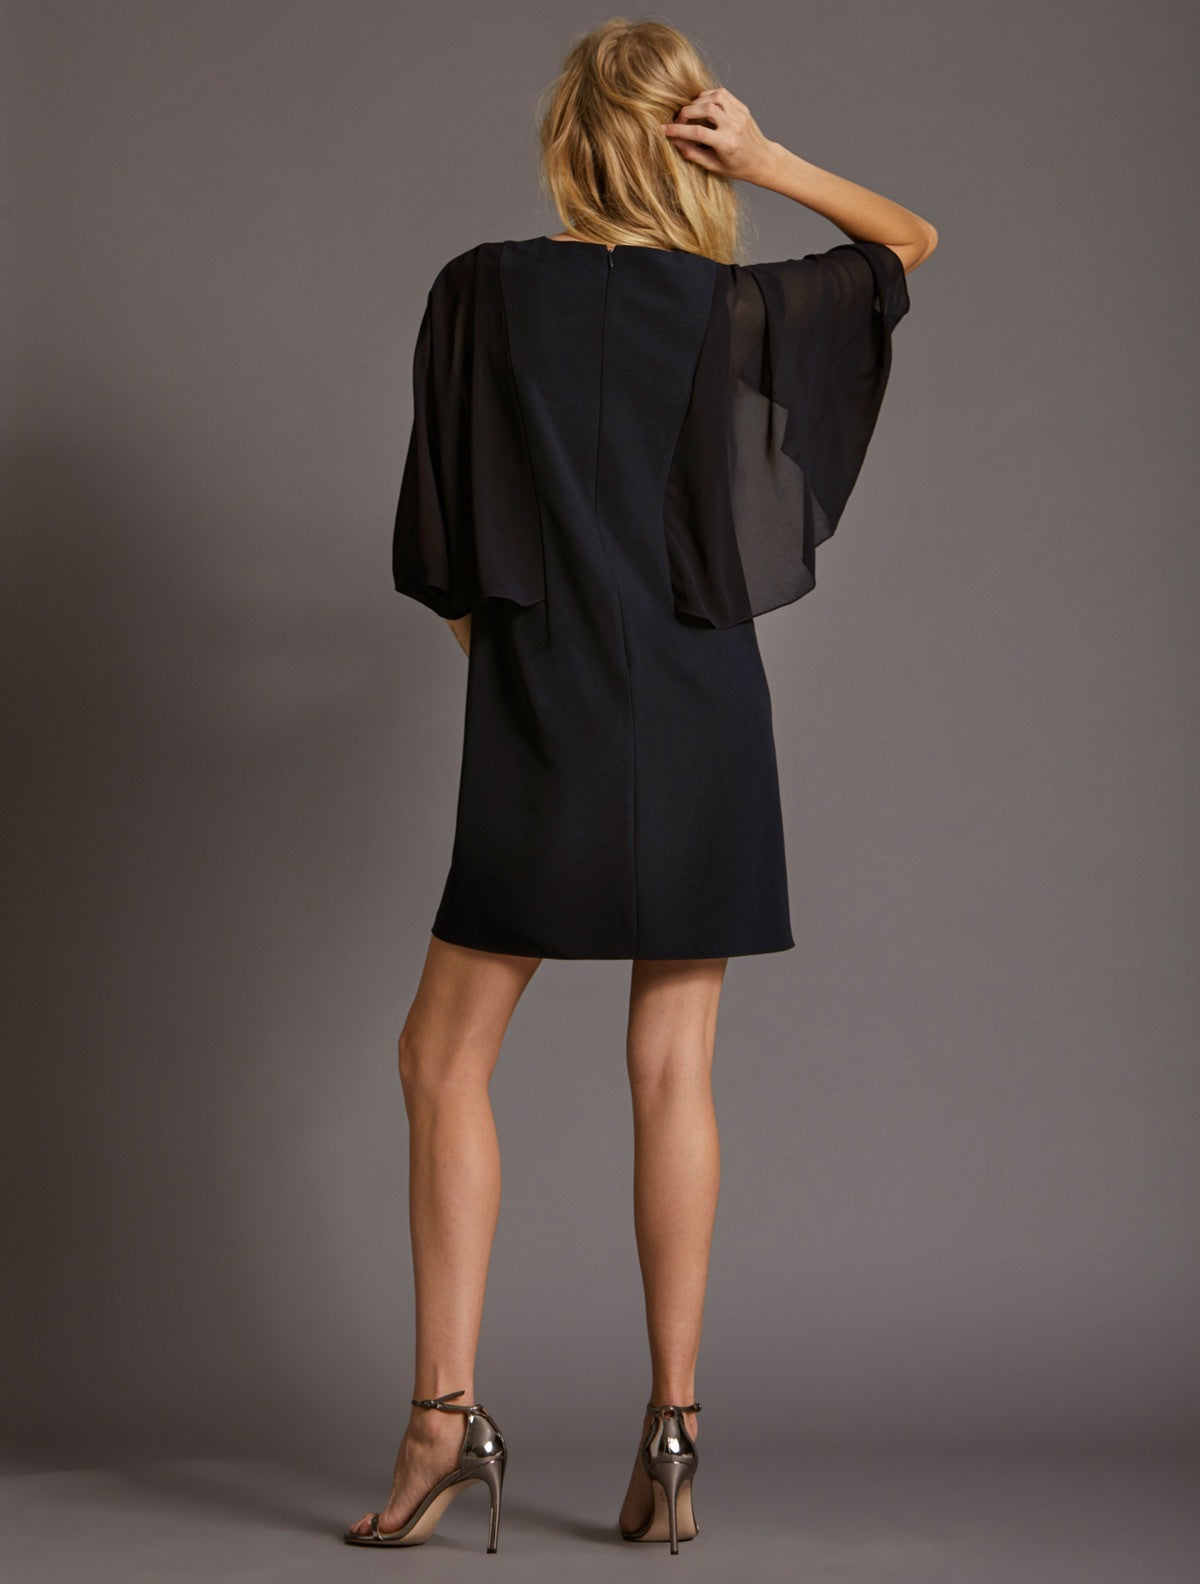 Blouson Sleeve Dress - Halston